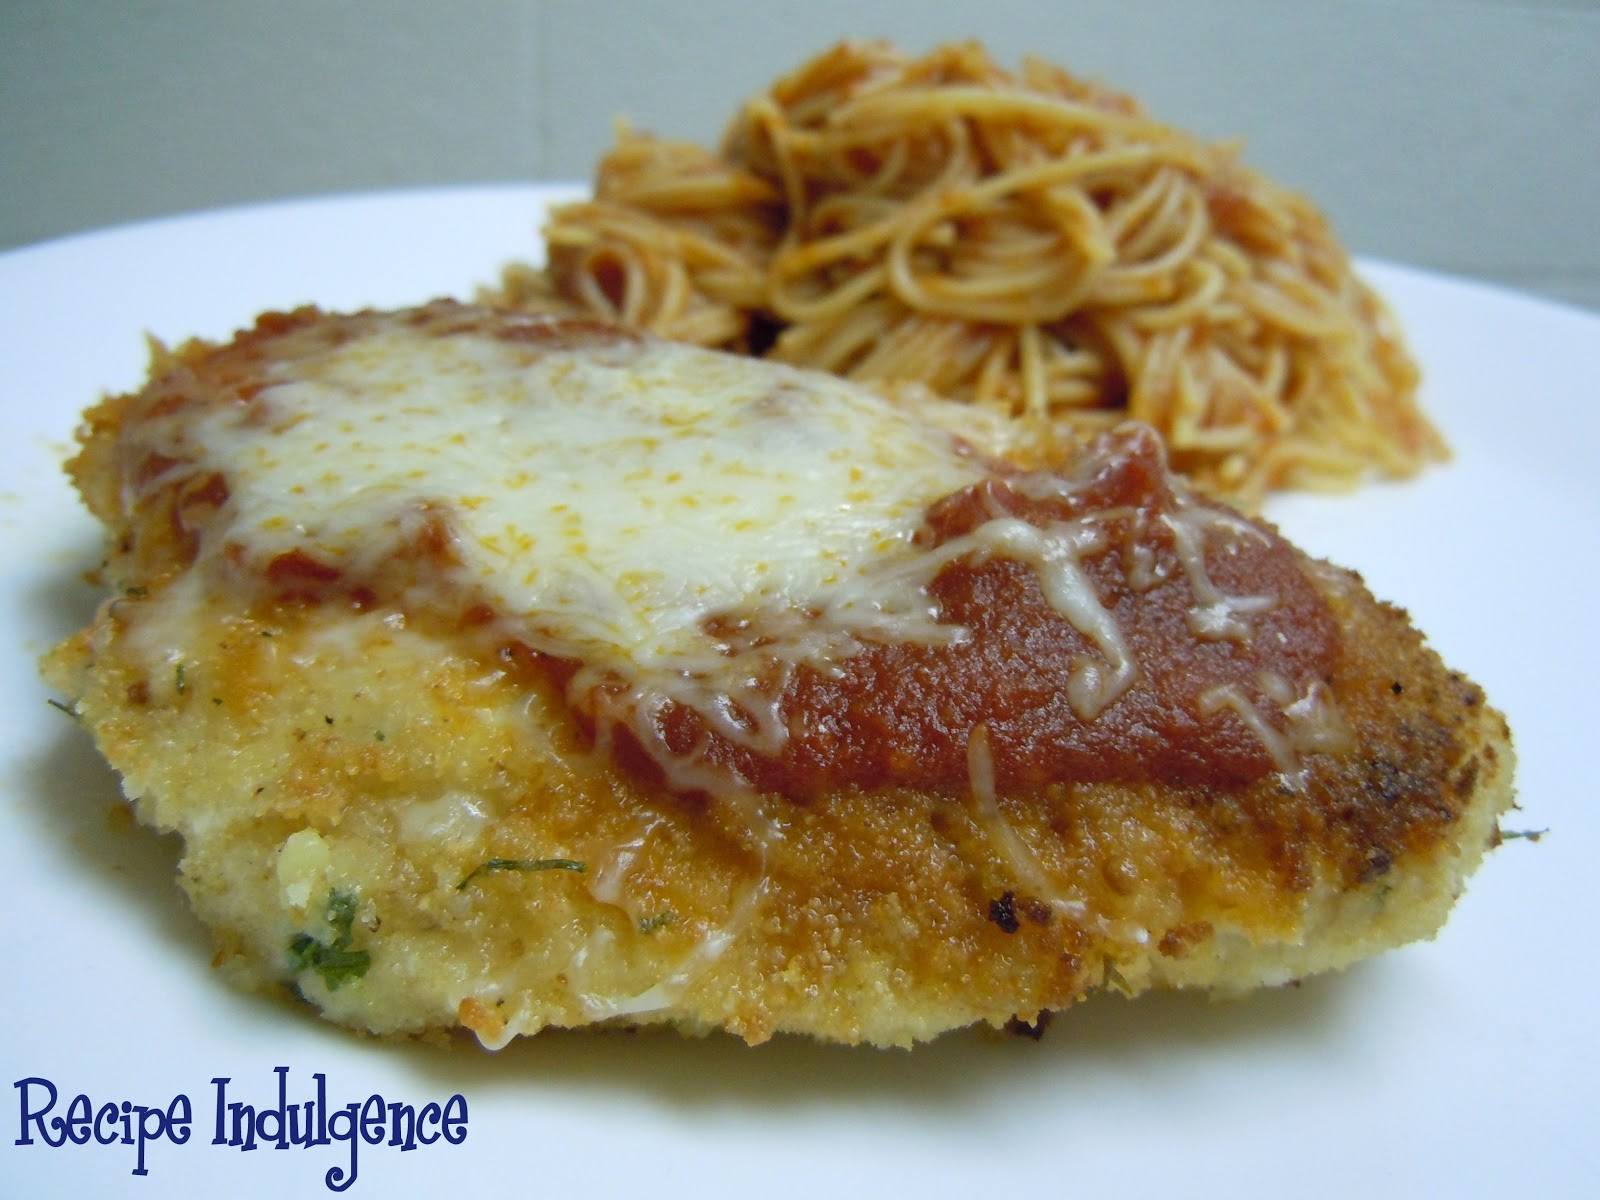 Recipe Indulgence: Baked Chicken Parmesan